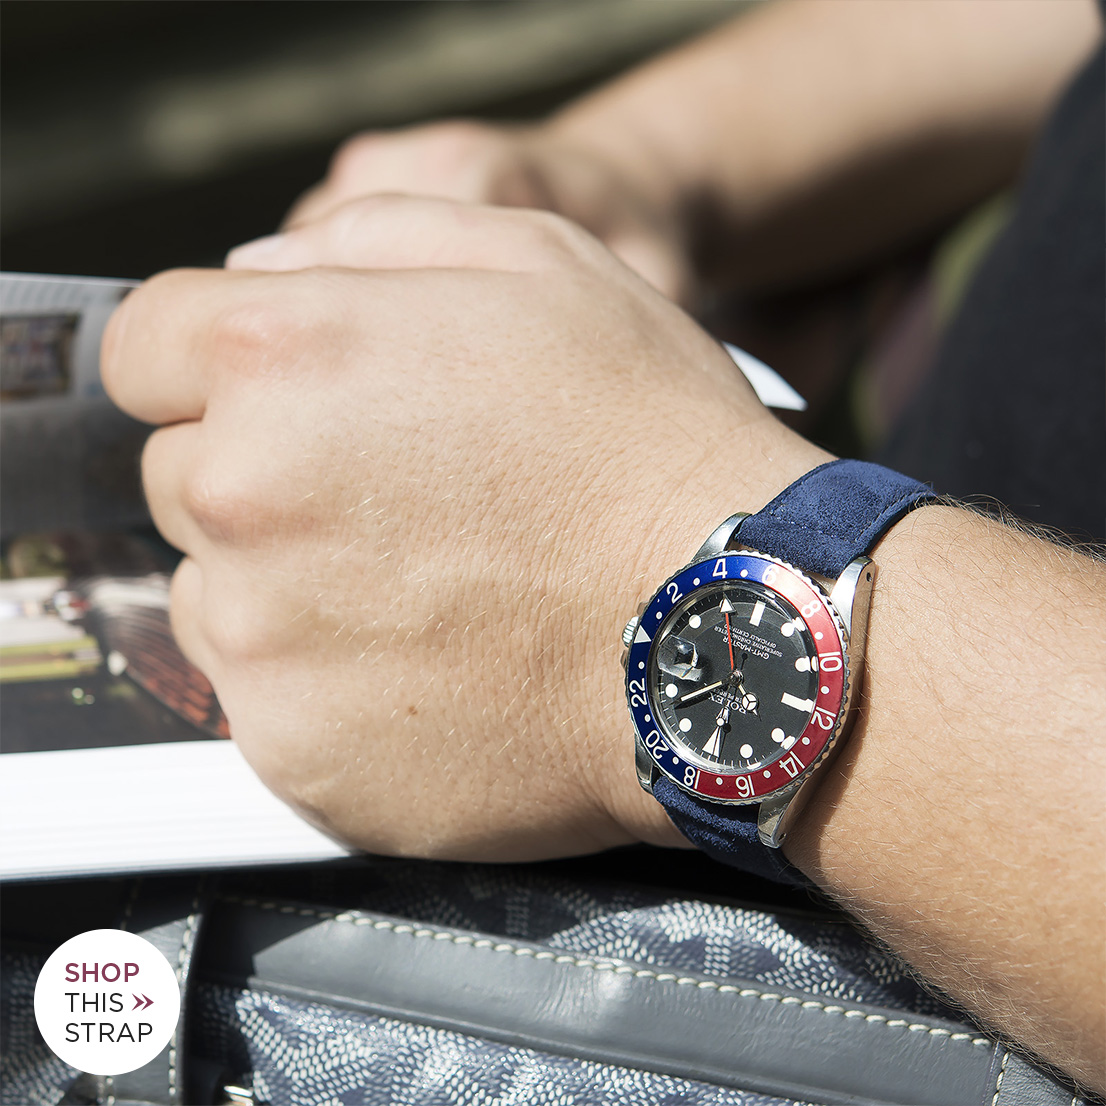 Bulang and Sons Strap Guide rolex 1675 GMT Pepsi Bezel Faded B